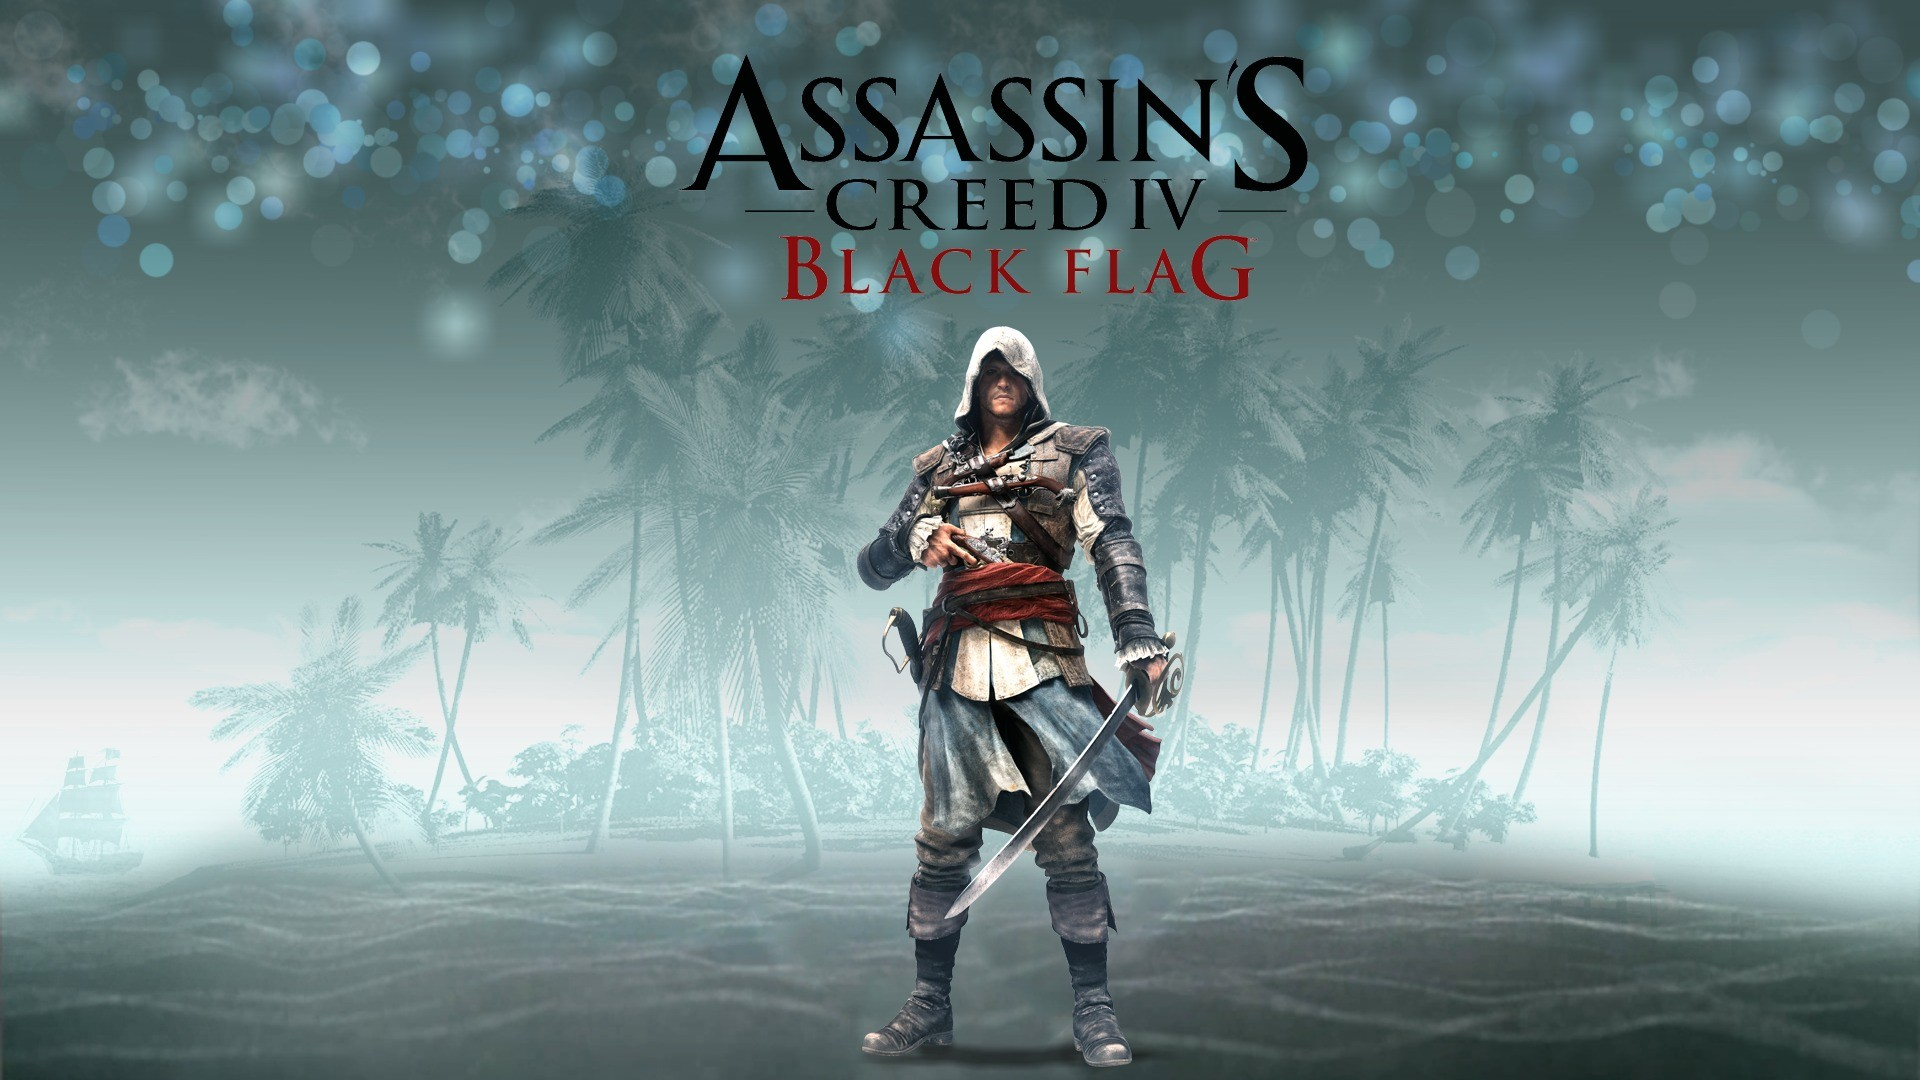 Assassin's Creed 4: Black Flag Guide How to Complete Sequence 01